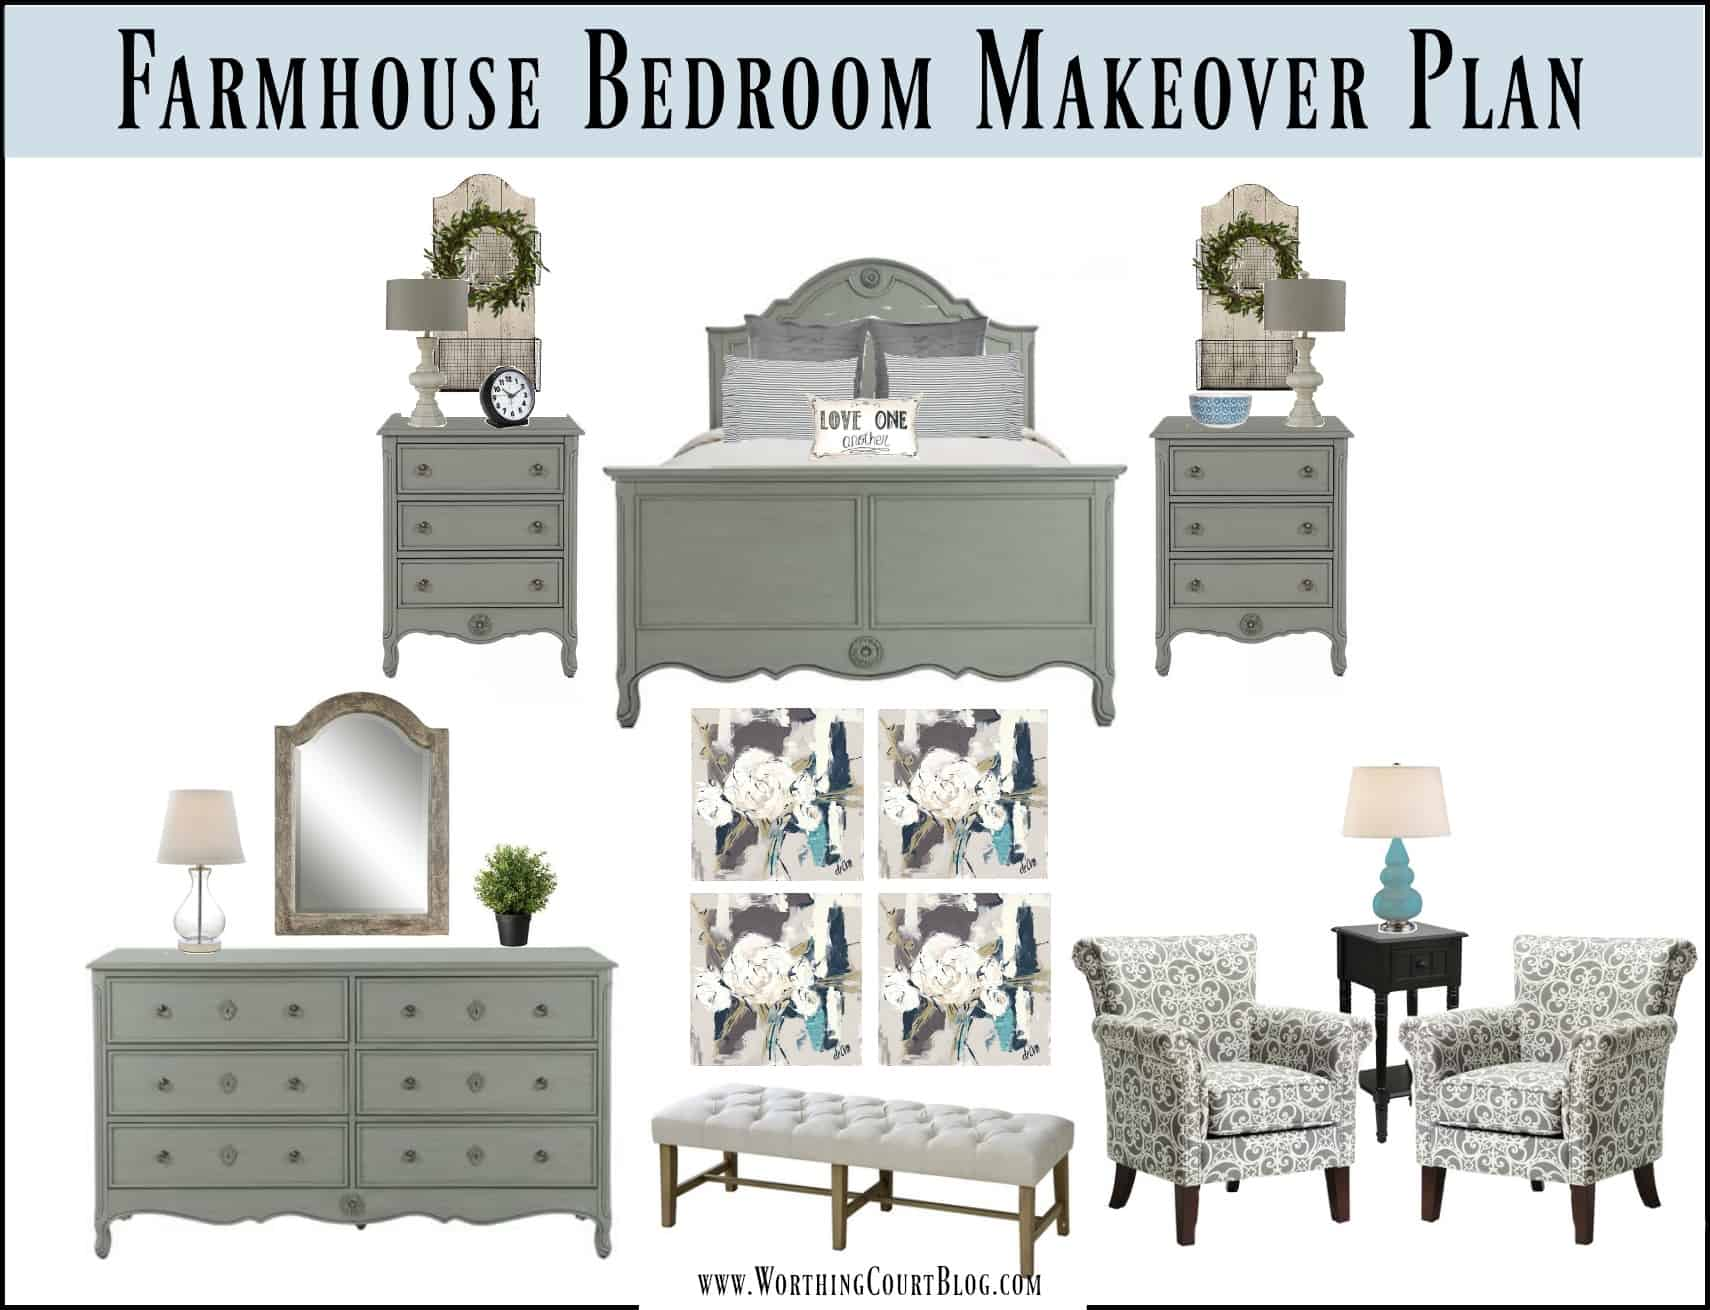 Design plan for a bedroom makeover